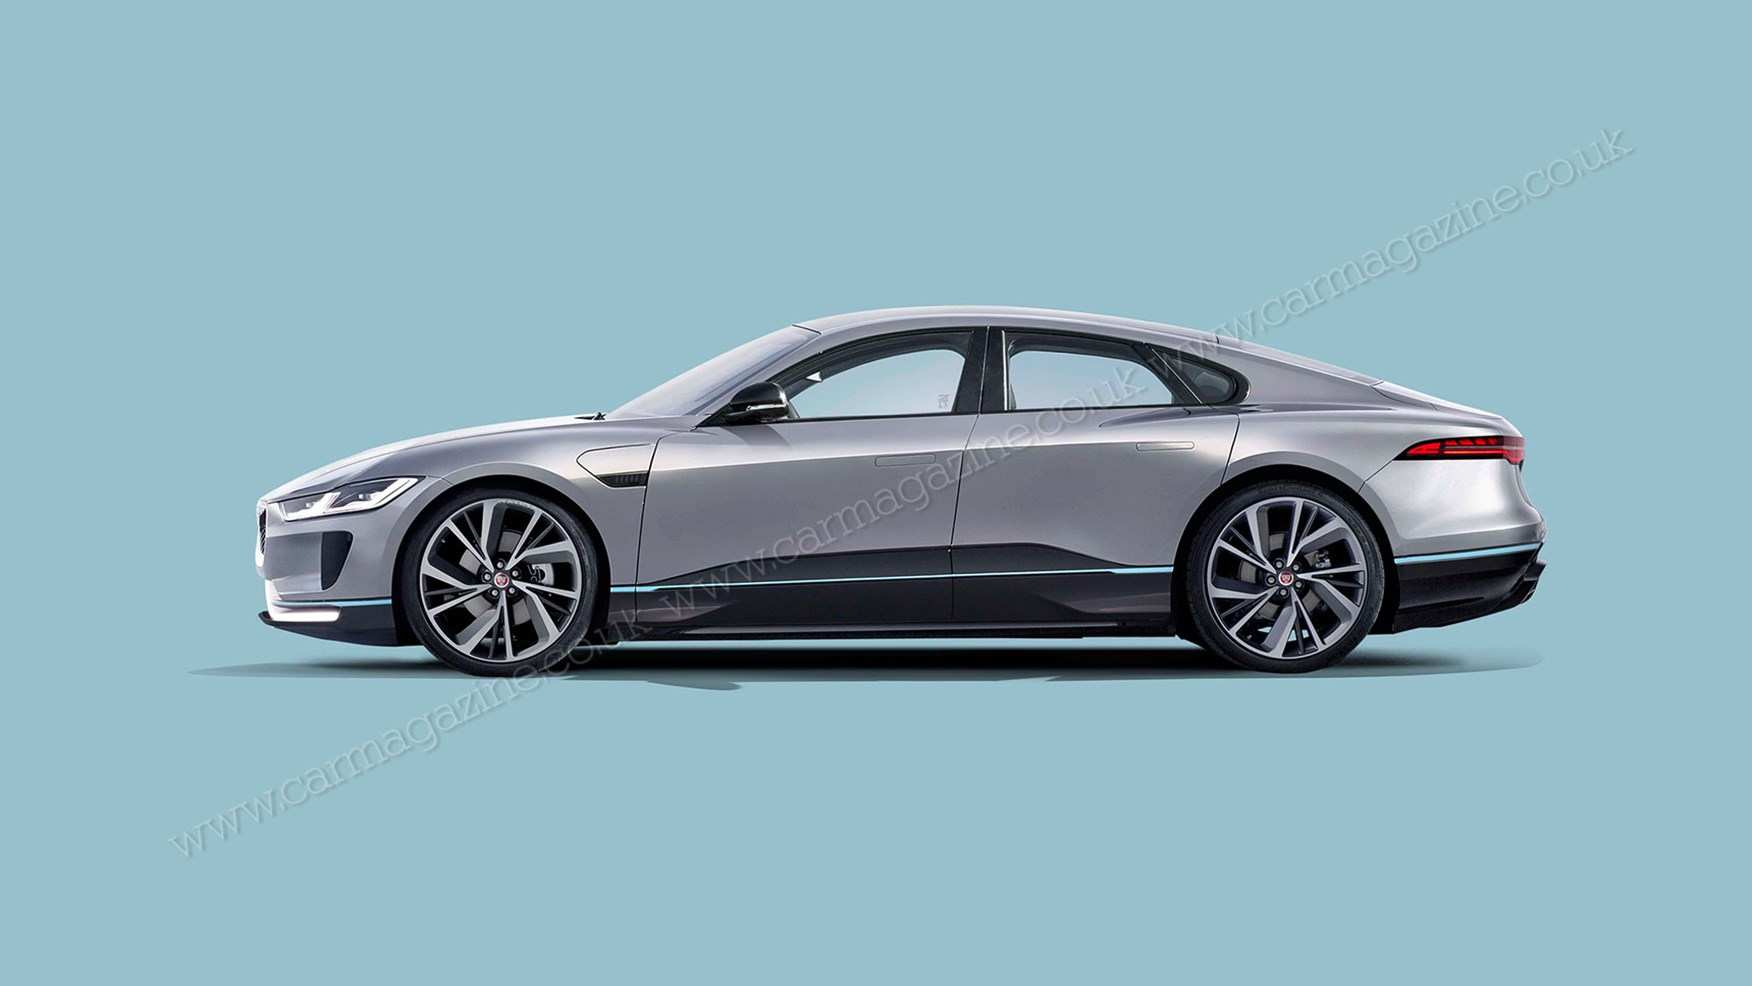 83 All New Jaguar J Type 2020 Price Photos